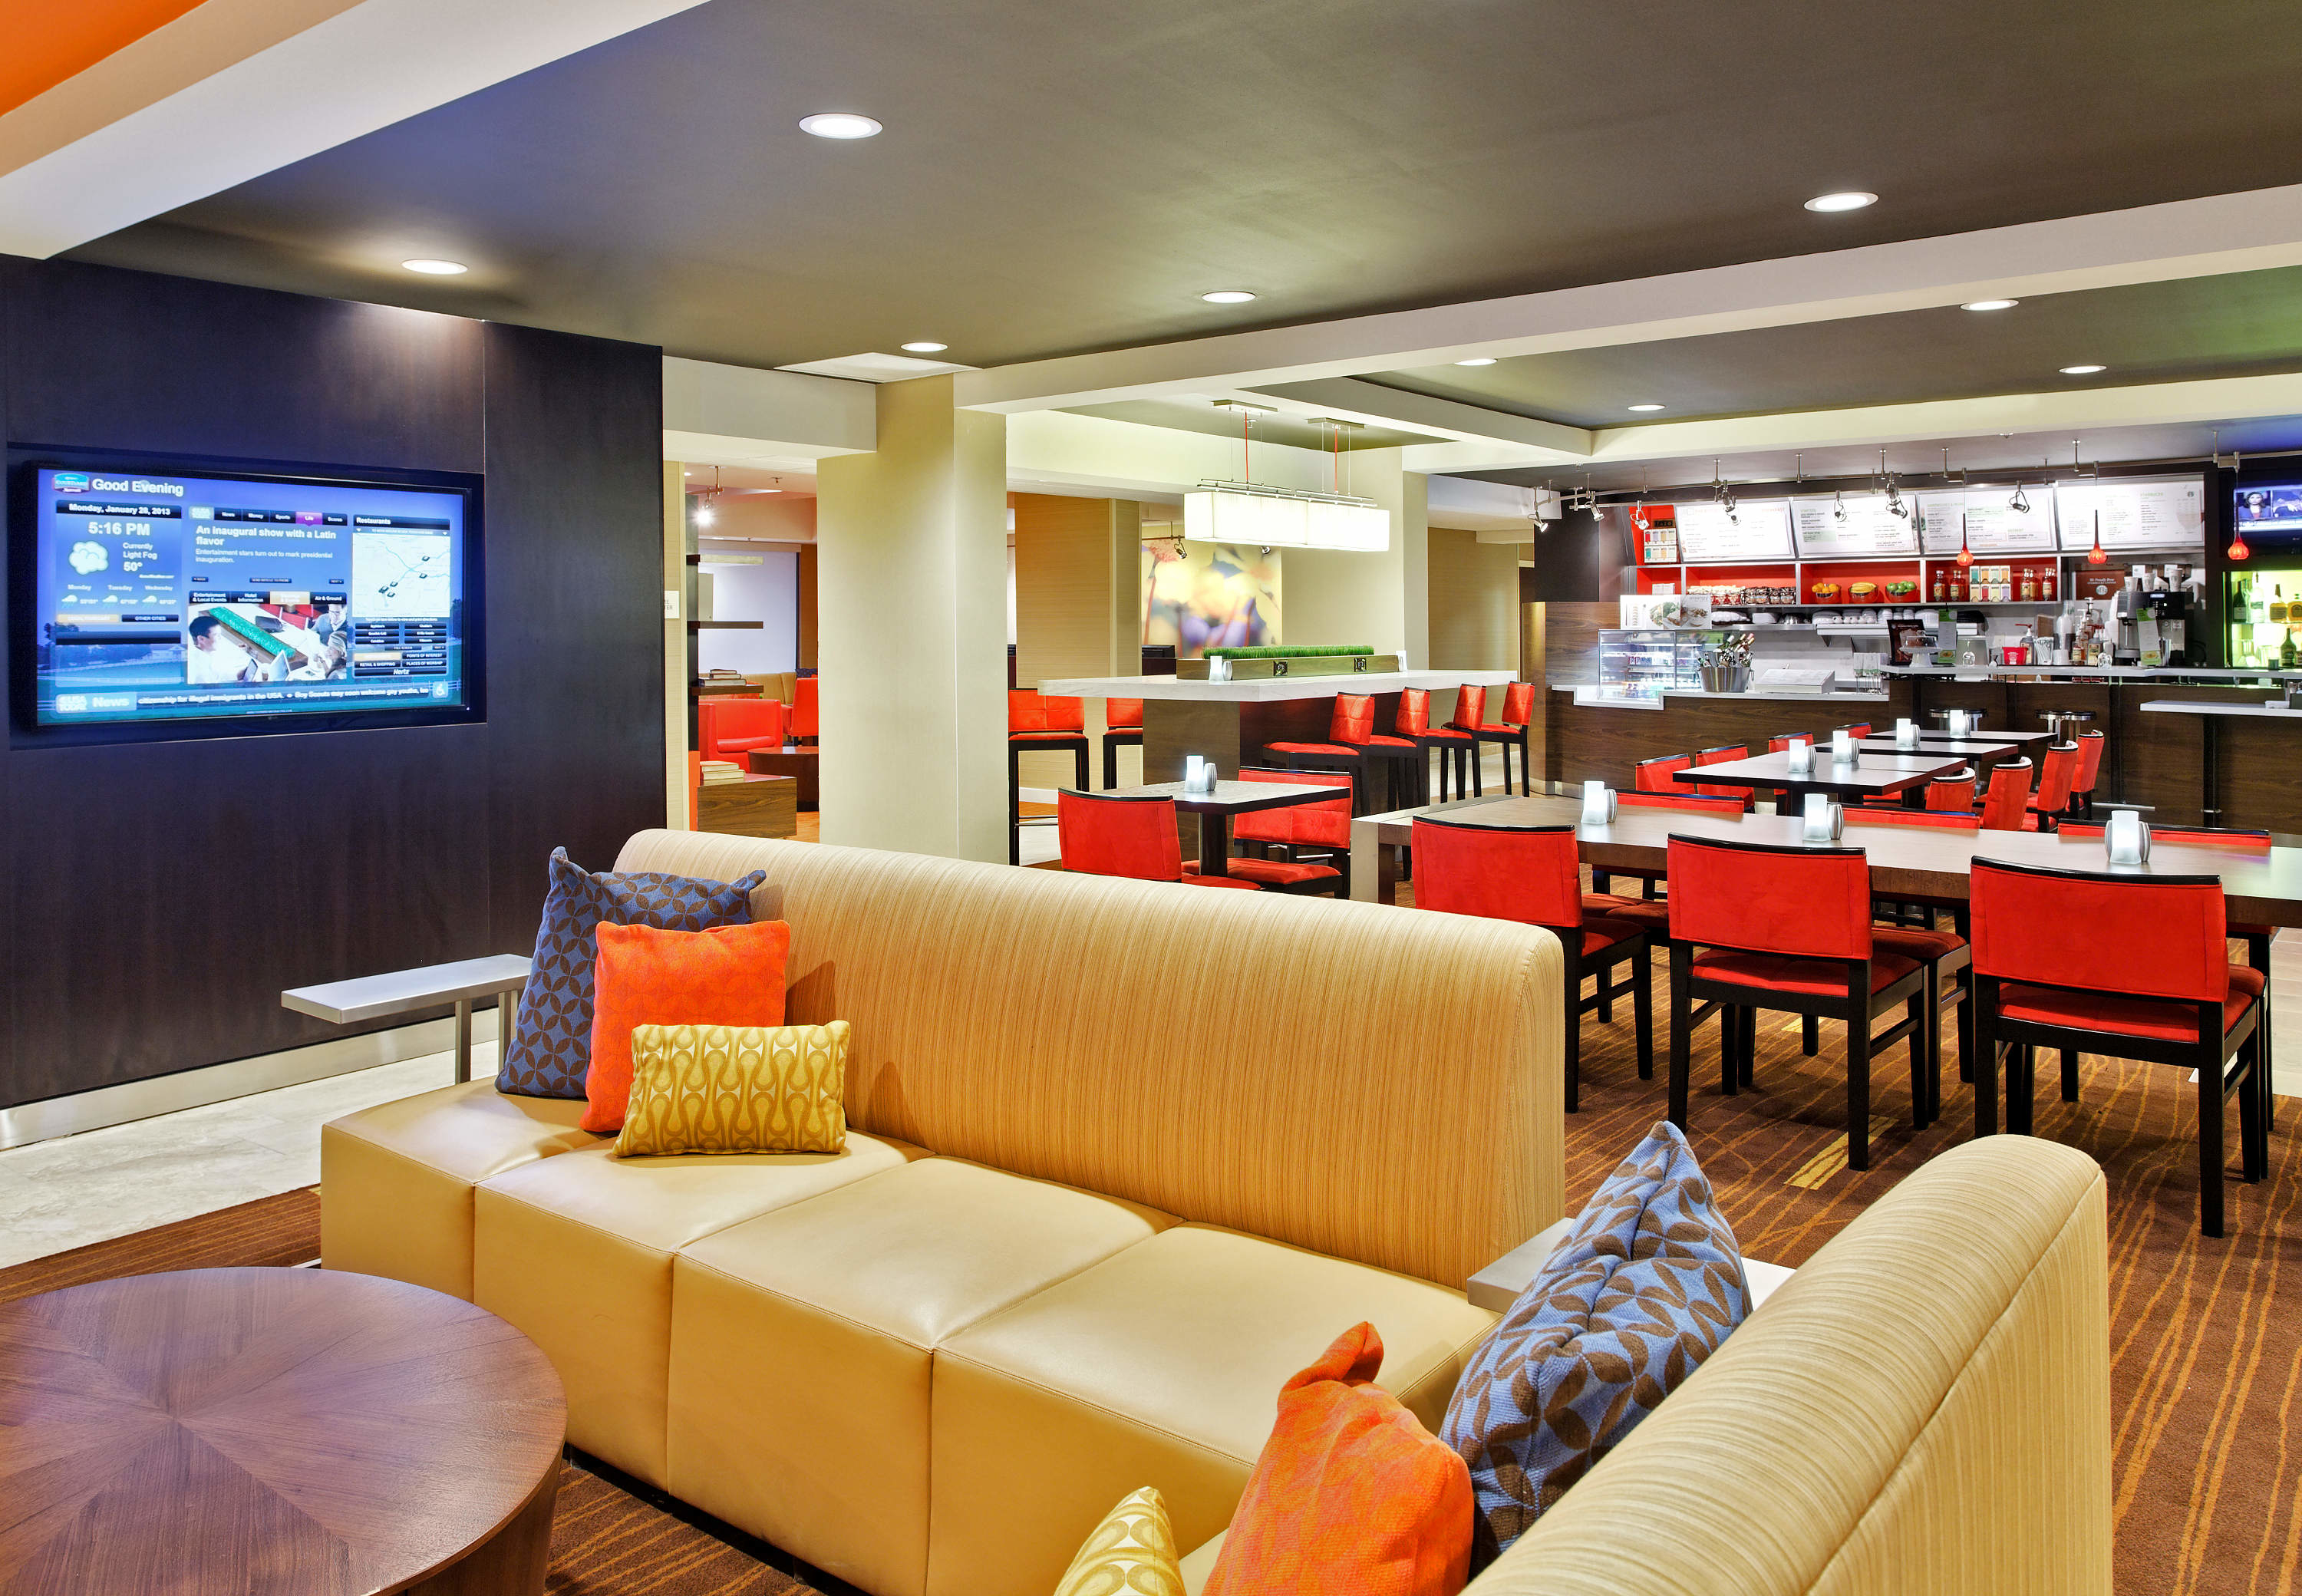 Courtyard by Marriott Cincinnati Airport South/Florence image 0